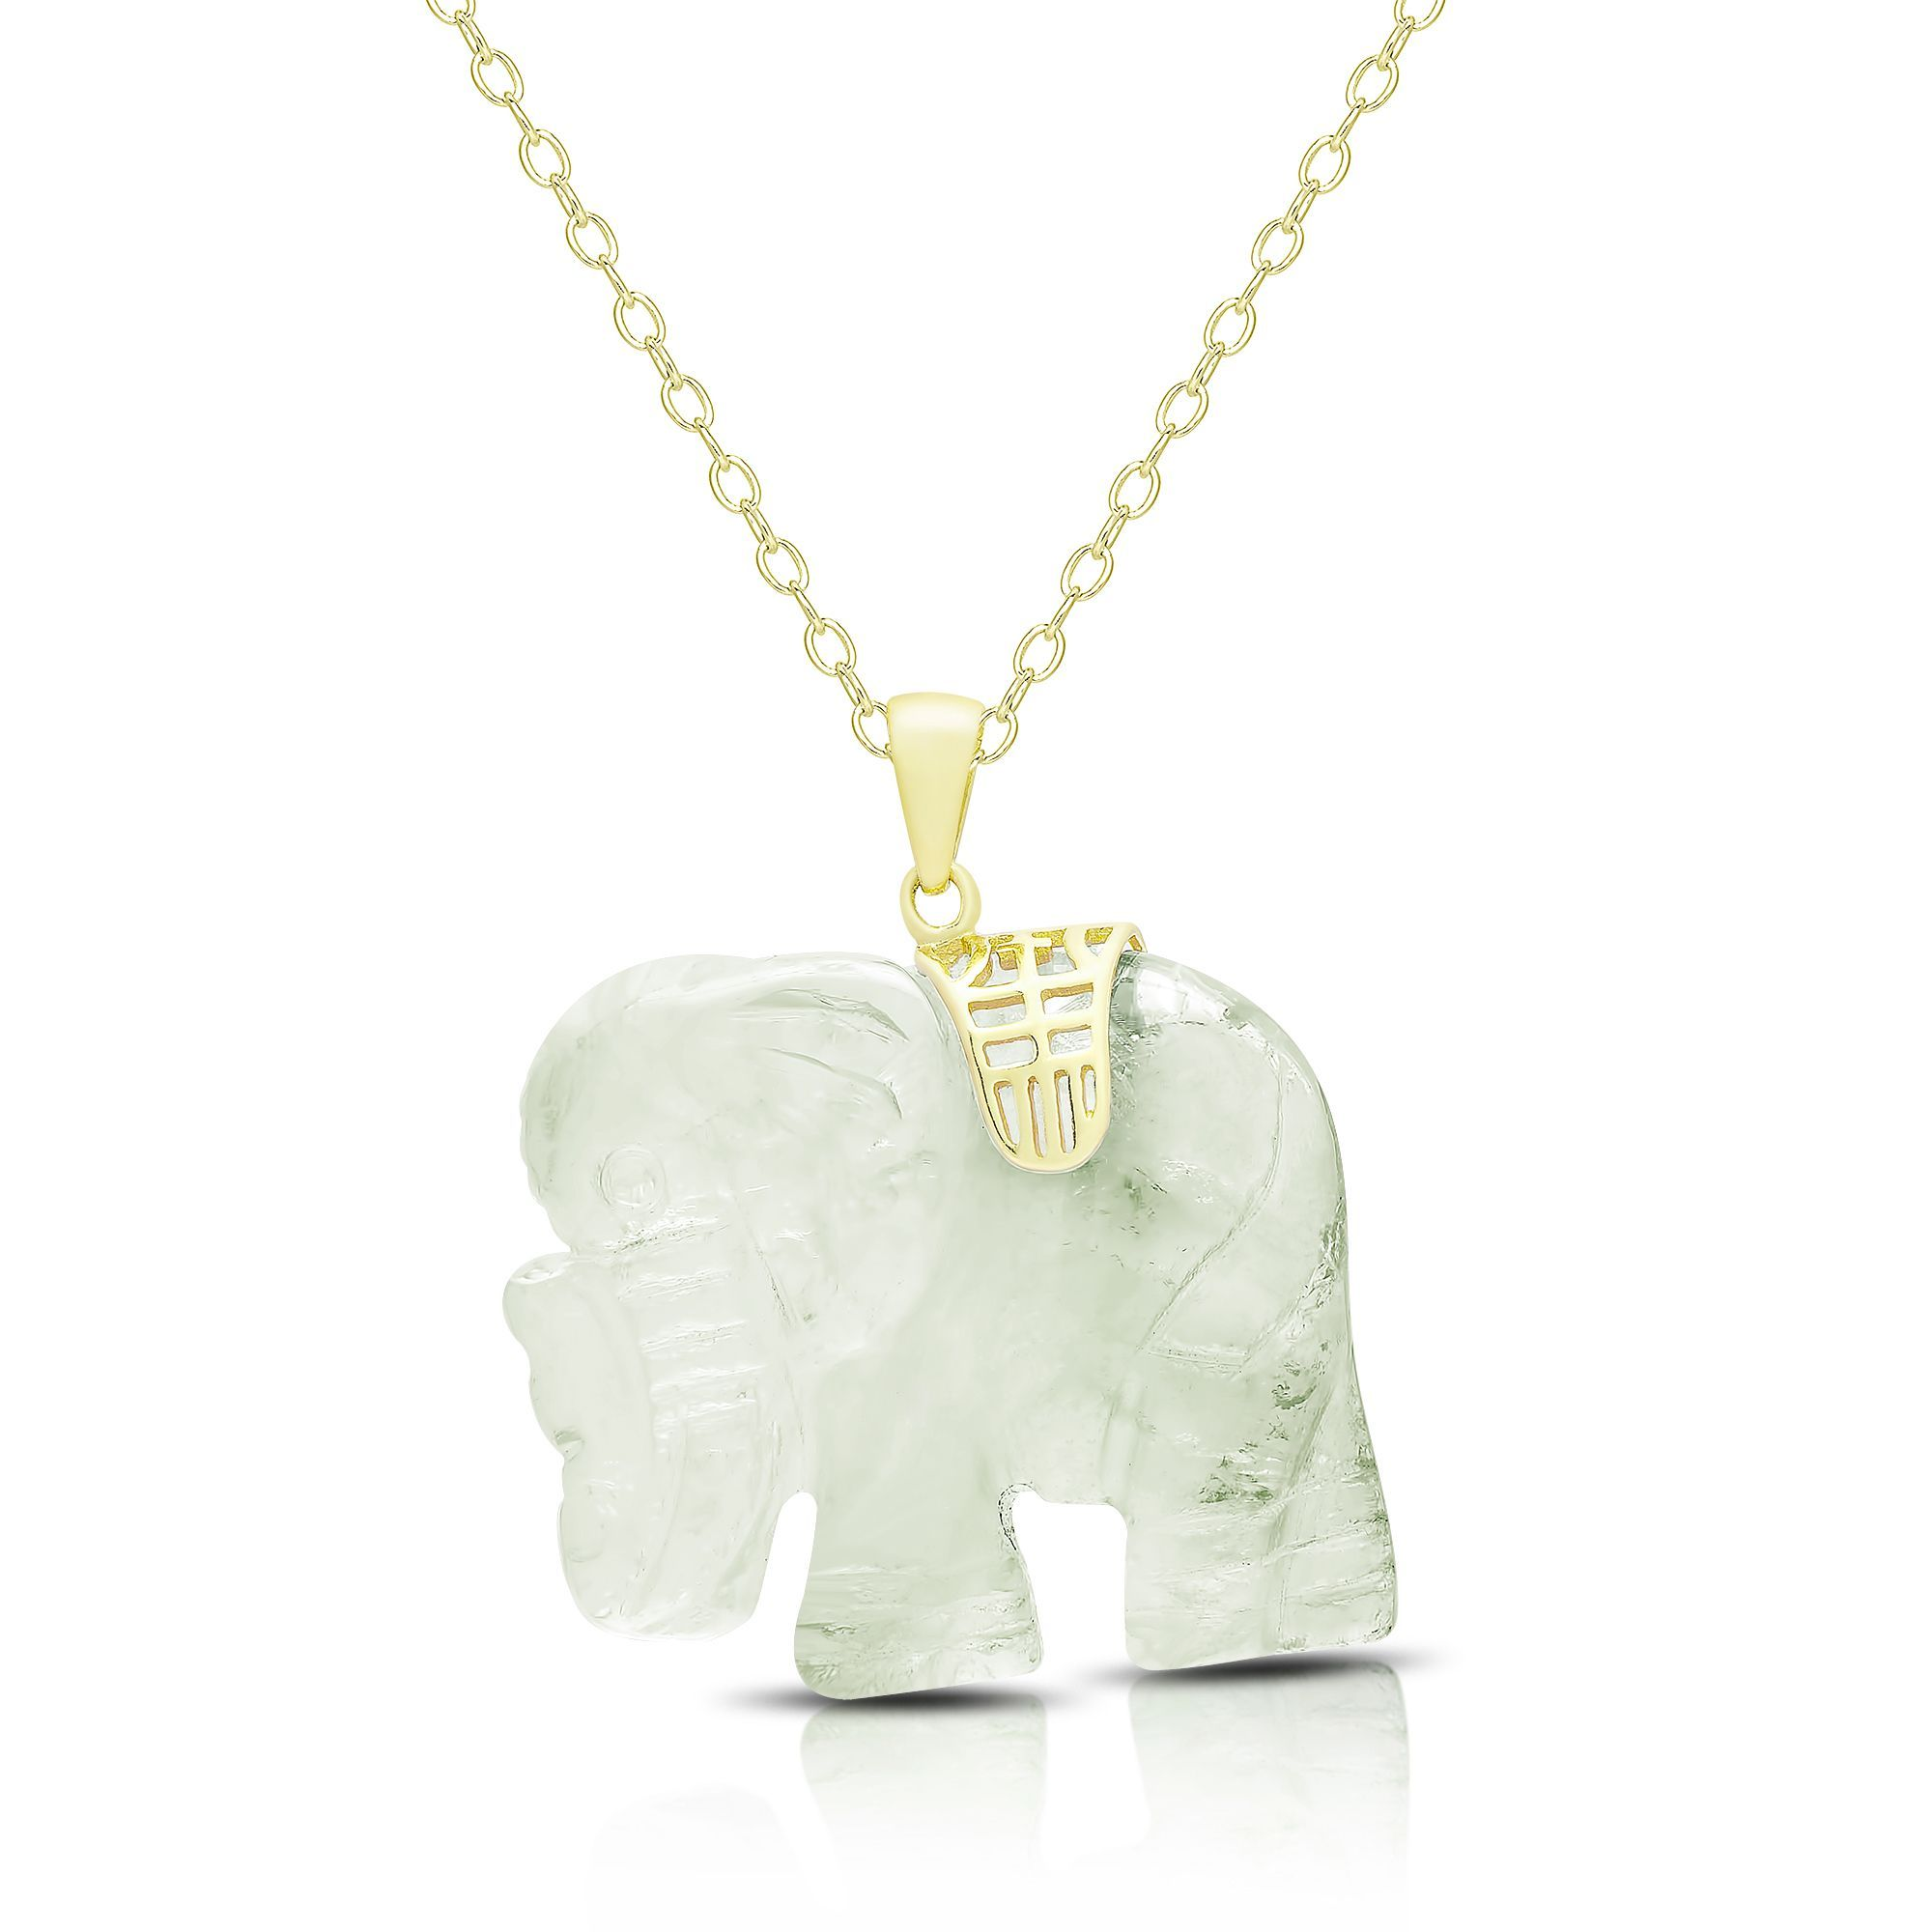 Dolce giavonna gold over silver carved new jade elephant necklace dolce giavonna gold over silver carved new jade elephant necklace osn1028 nj womens size 18 inch green aloadofball Gallery